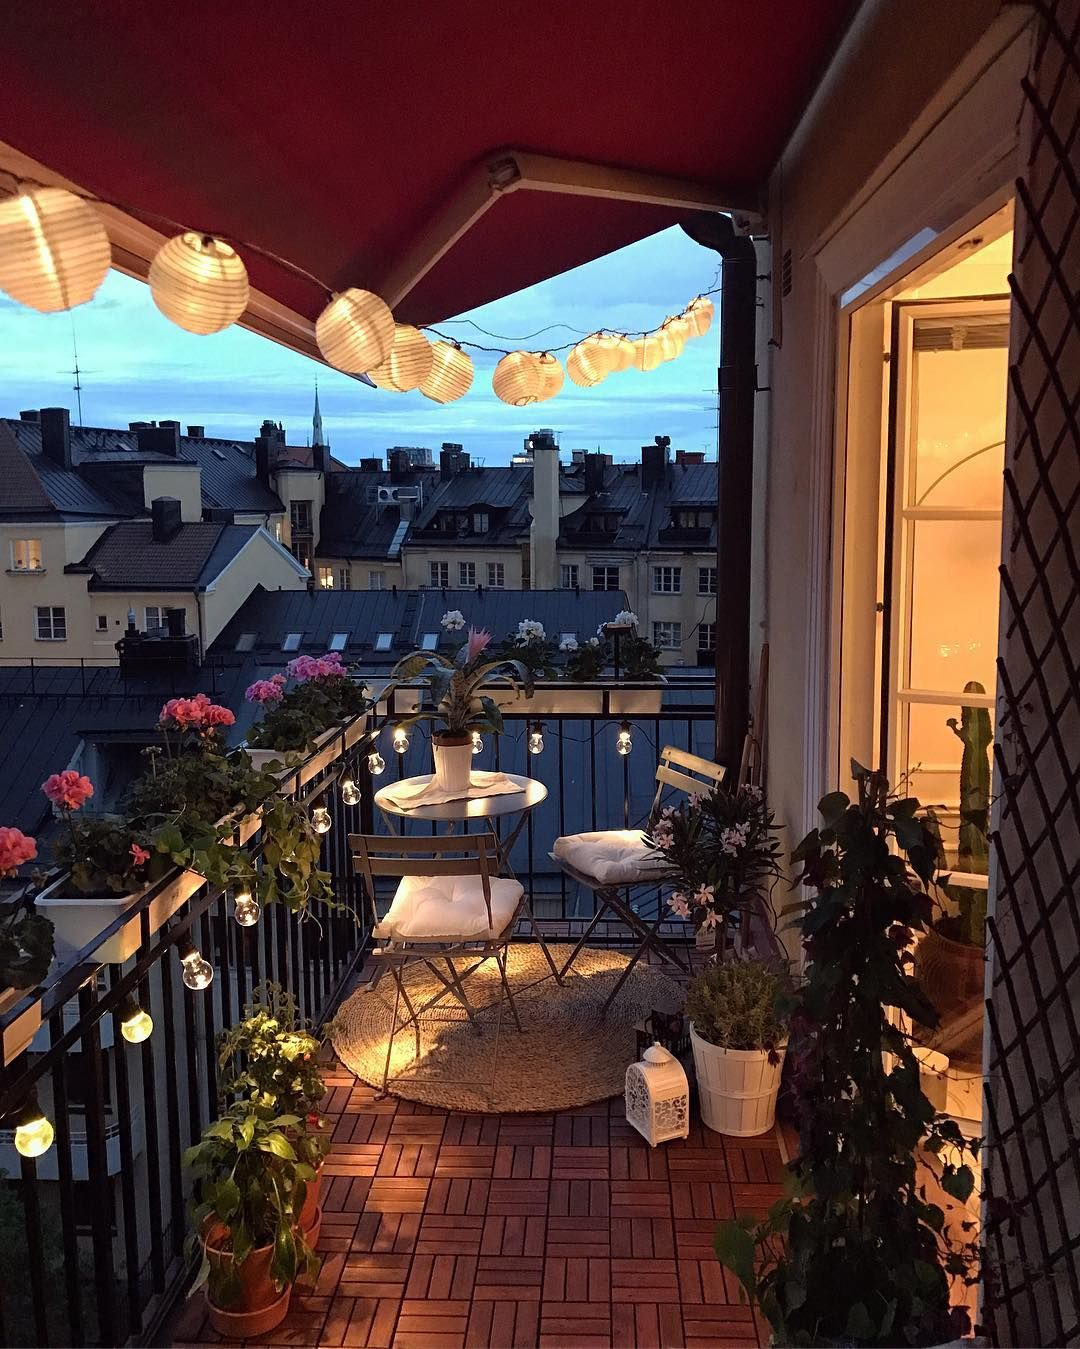 A nice evening balcony in Stockholm #balconylighting